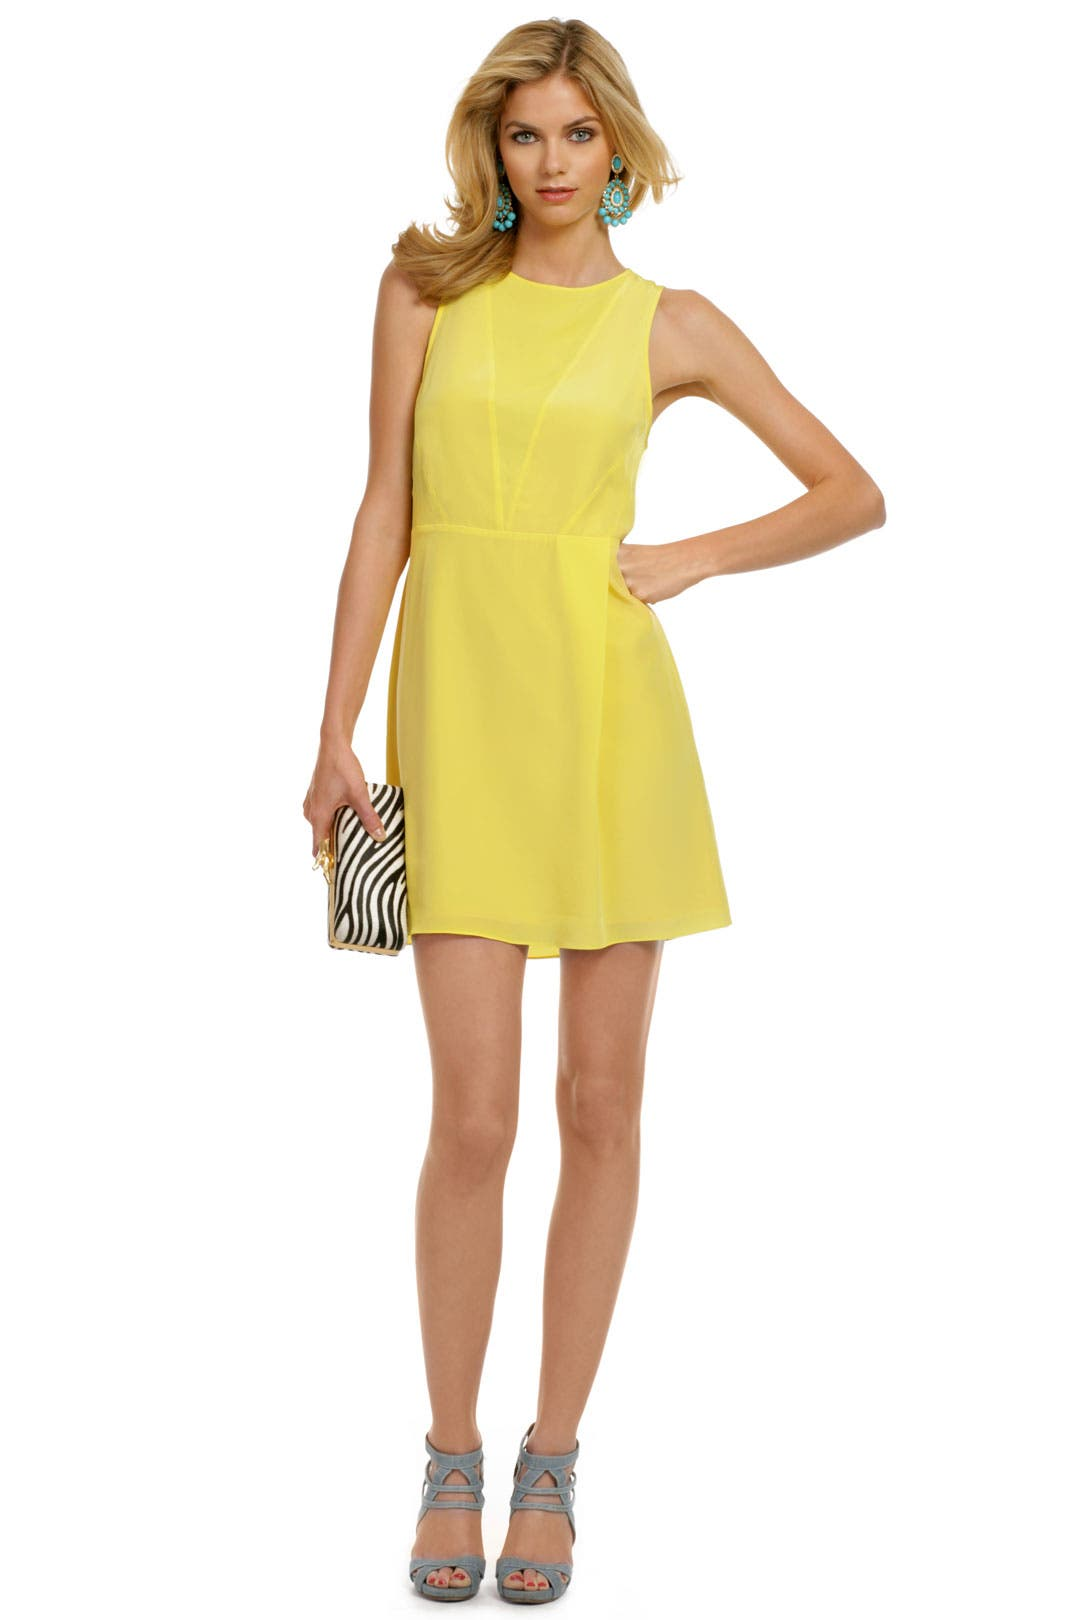 Blinded by the Light Dress by Tibi